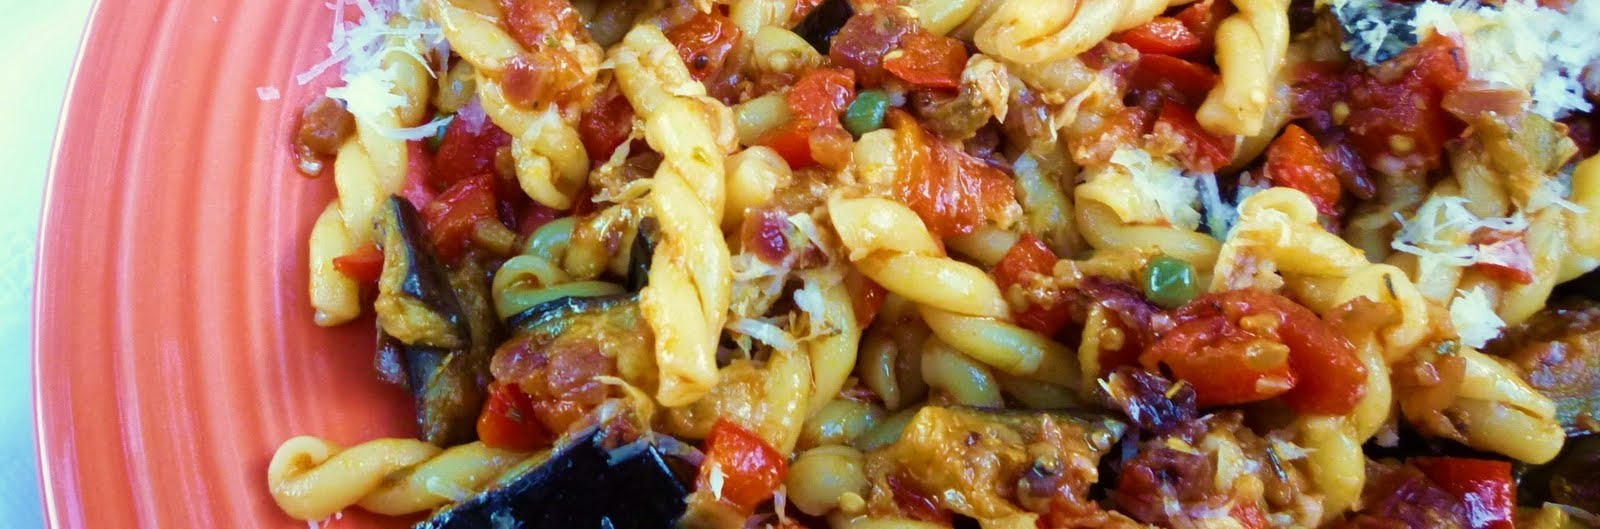 For Love of the Table: Pasta with Eggplant, Peppers, Olives & Capers